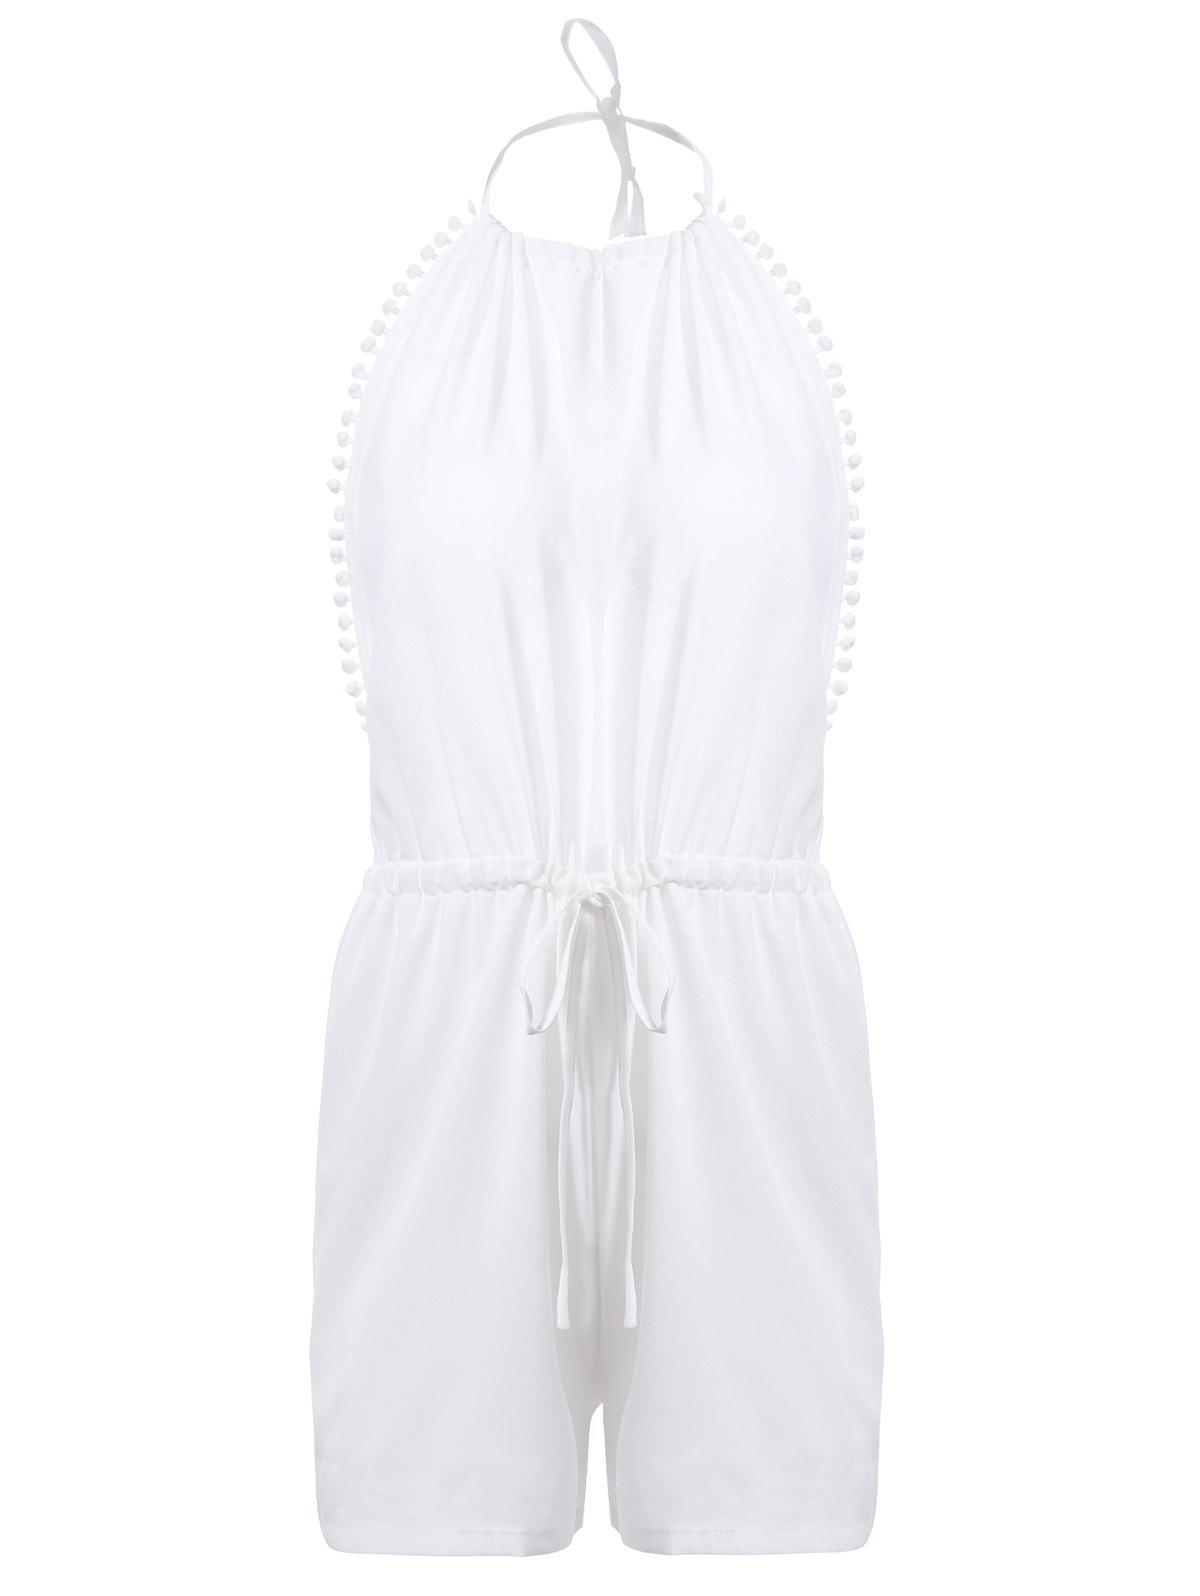 Trendy Halter Open Back Lace-Up Romper For Women - WHITE S